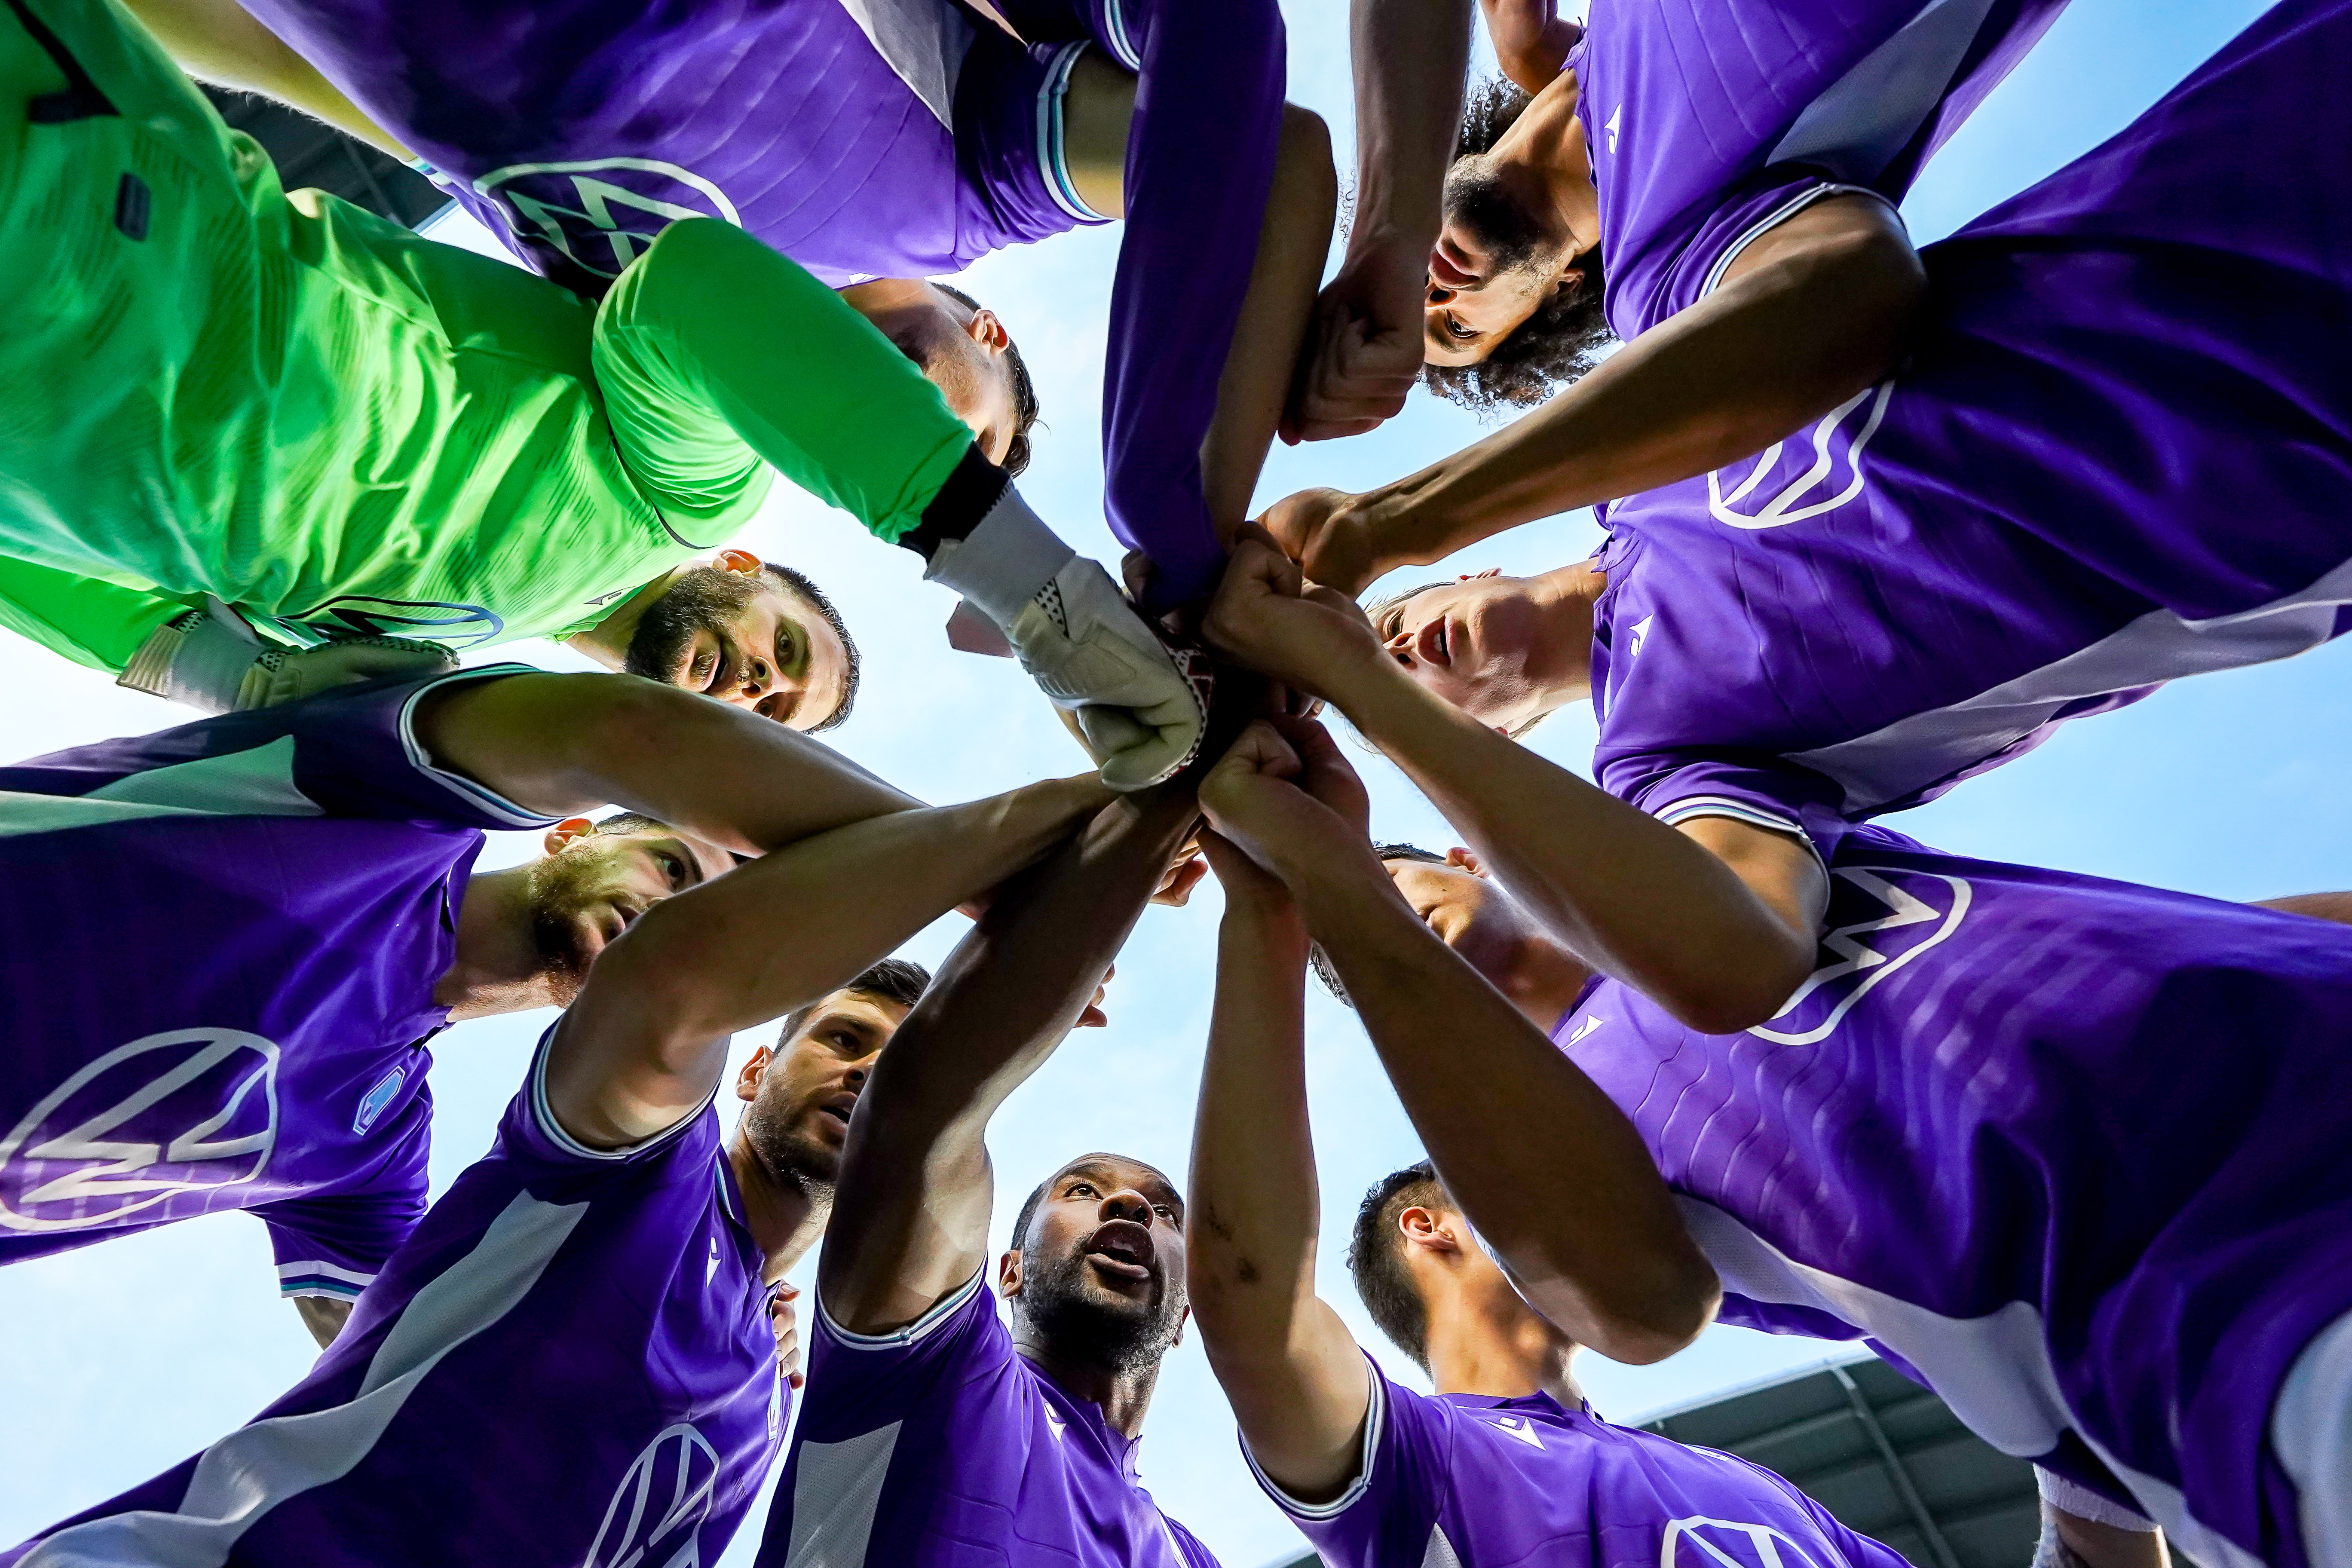 July 17, 2021. Pacific FC vs Forge FC. Pre-Game. Pacific FC players go all hands in during the team huddle.